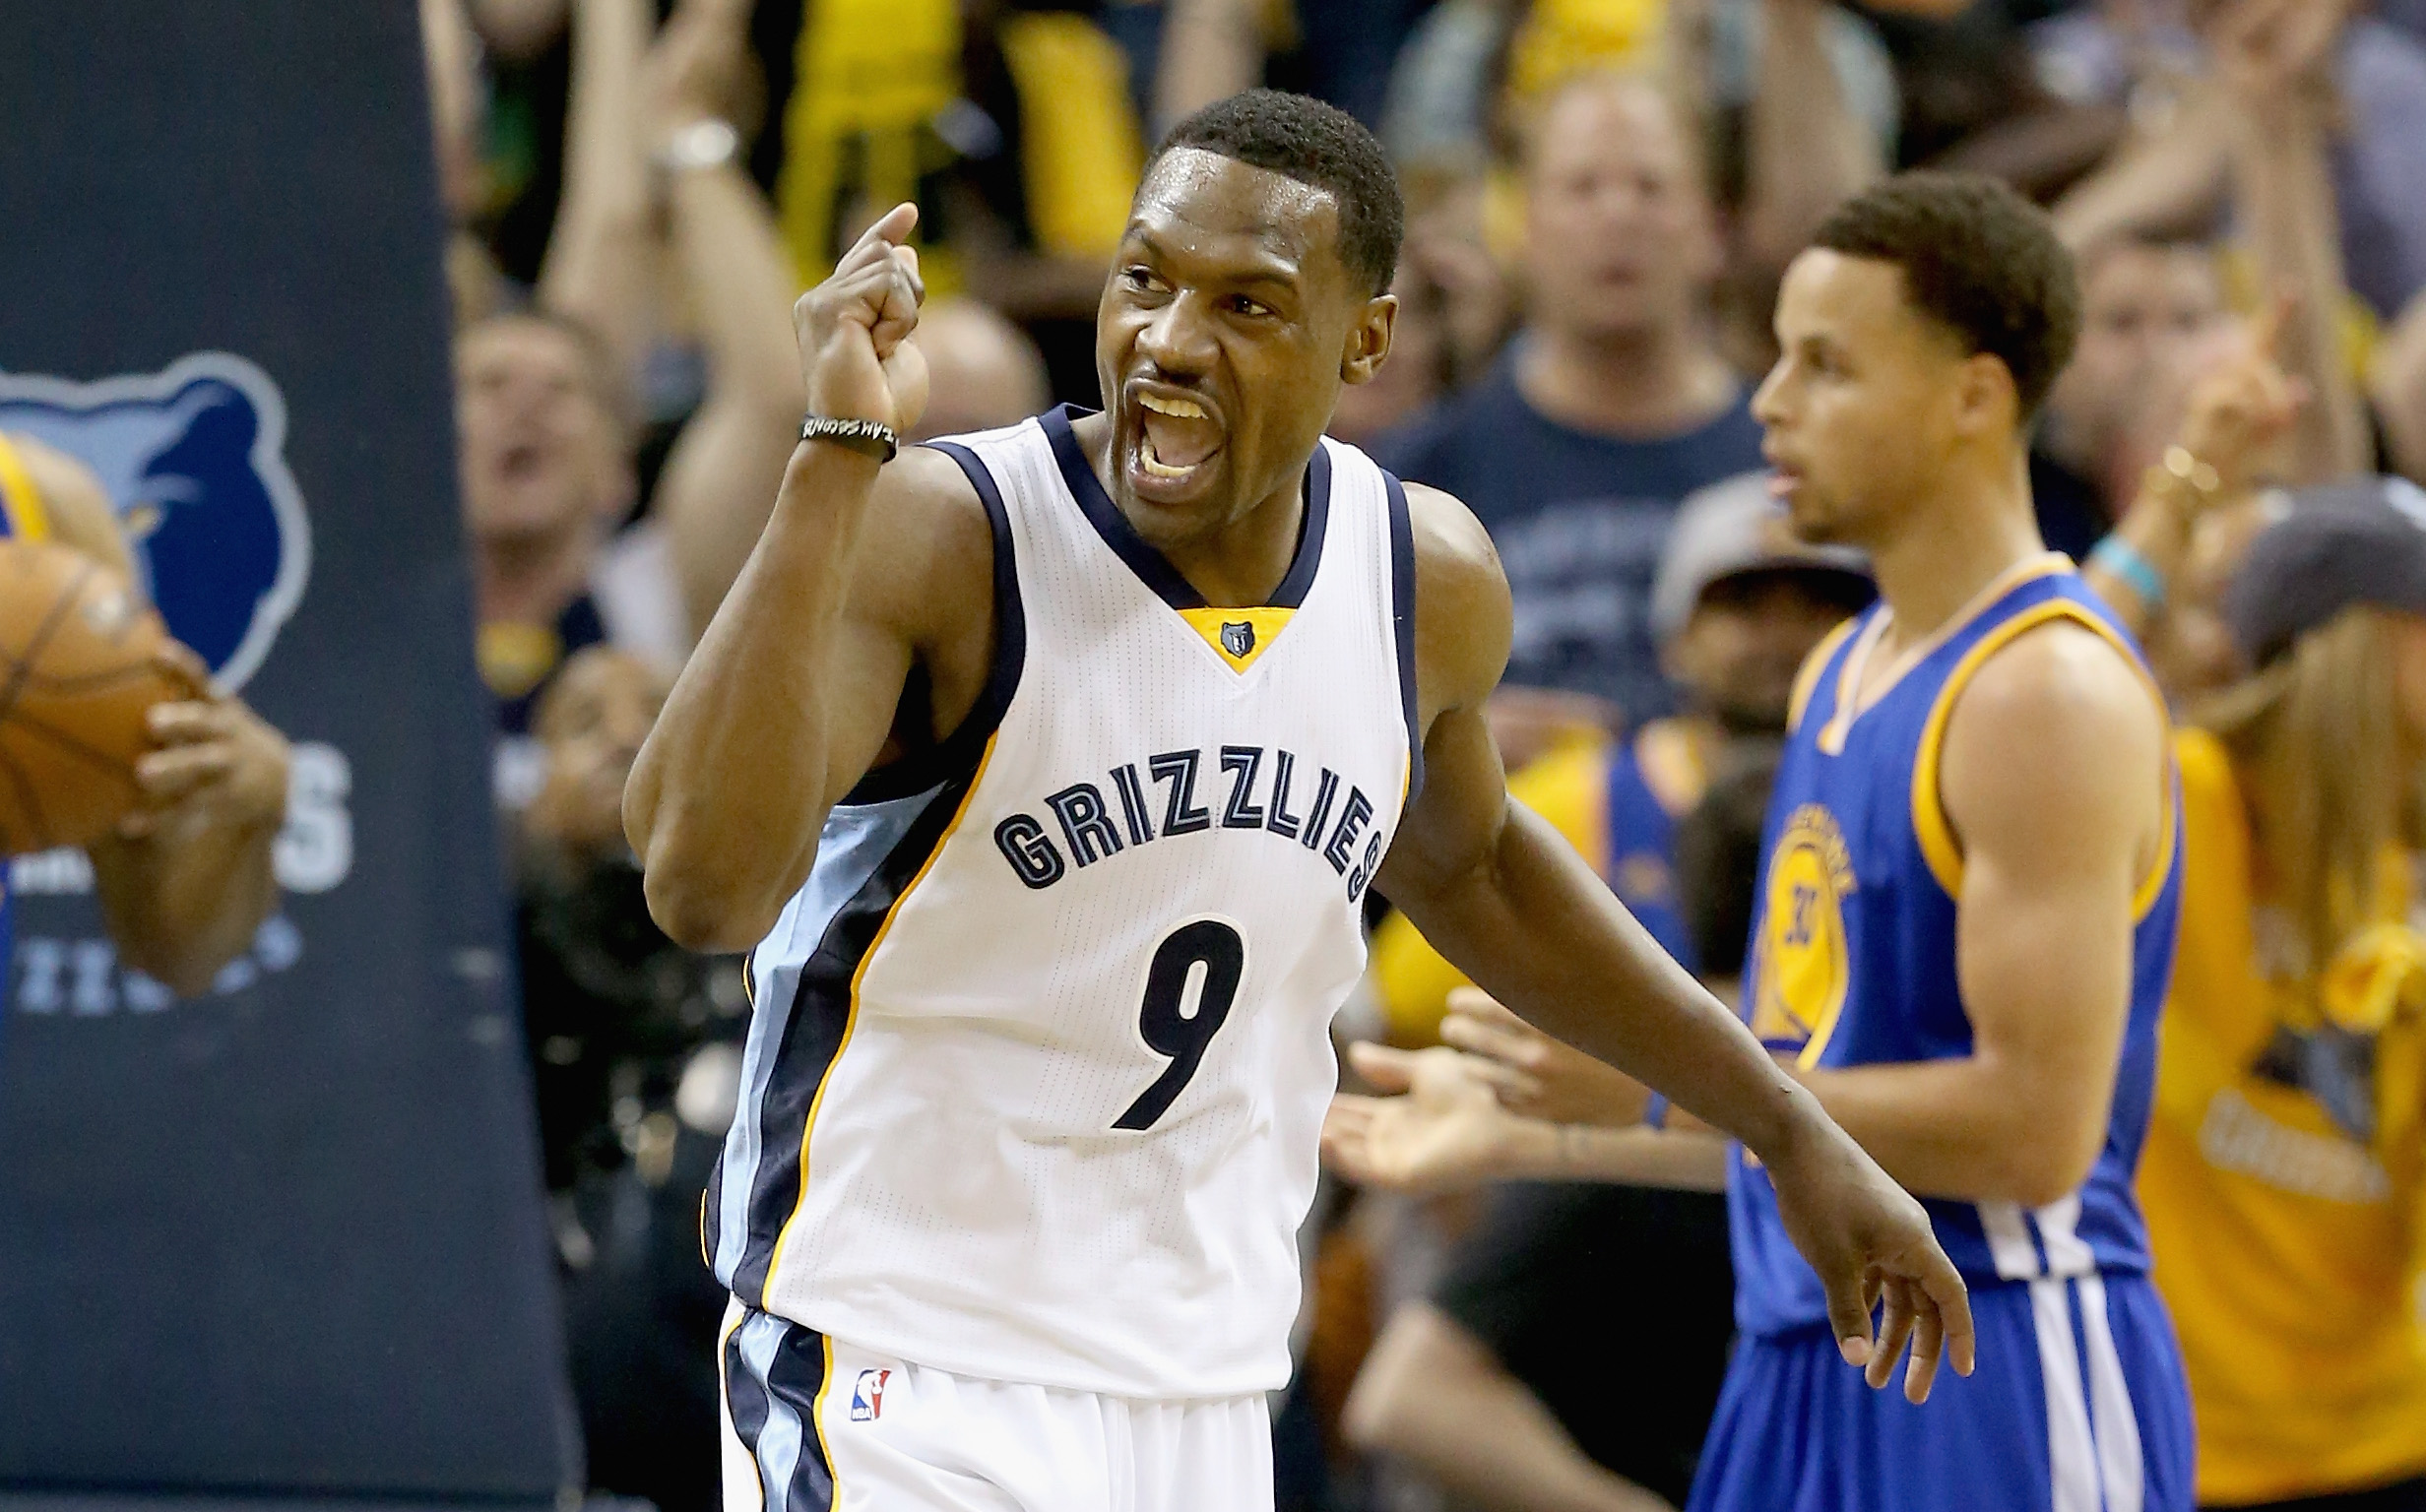 MEMPHIS, TN - MAY 09:  Tony Allen #9 of the Memphis Grizzlies celebrates after making a basket against the Golden State Warriors during Game three of the Western Conference Semifinals of the 2015 NBA Playoffs at FedExForum on May 9, 2015 in Memphis, Tenne